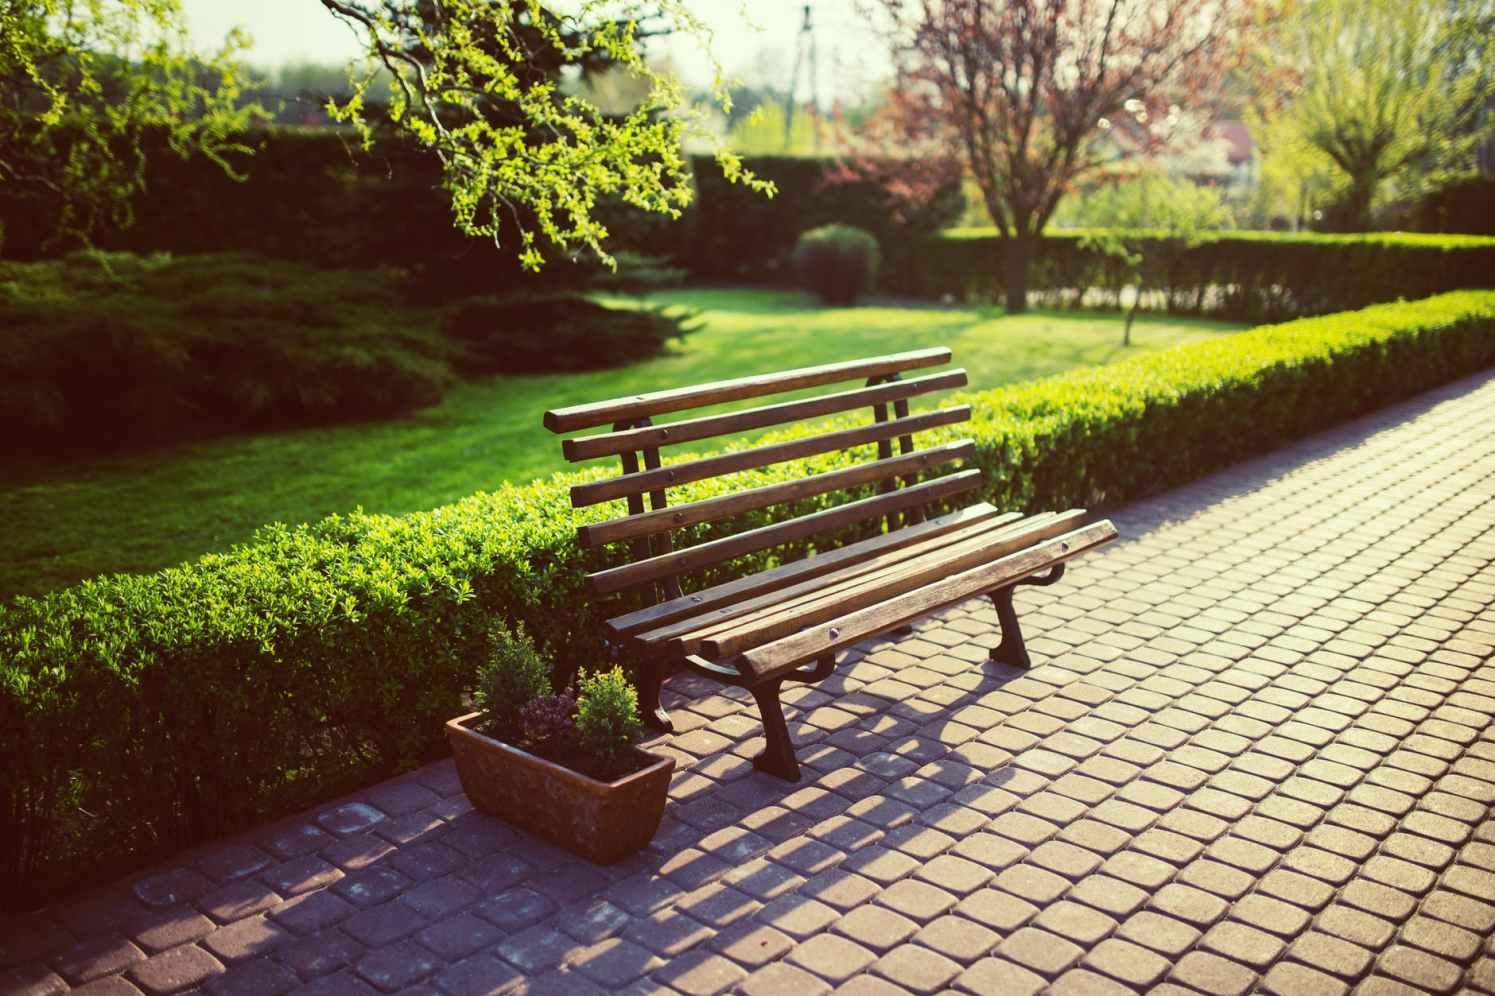 bench-garden-grass-evening.jpg